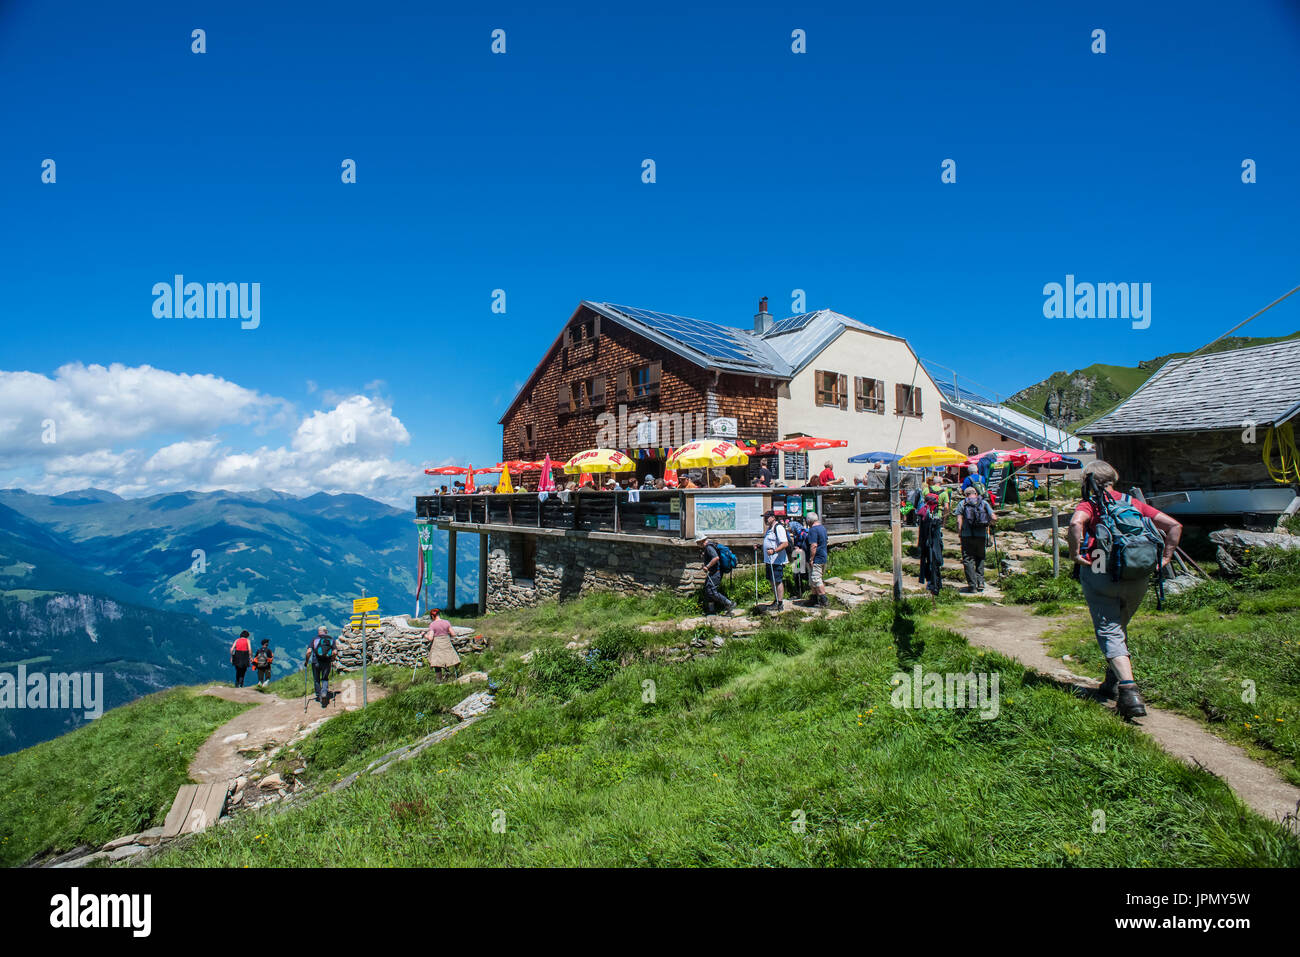 The Edel Hut mountain refuge above the resort town of Mayrhofen in the Zillertal Alps Stock Photo